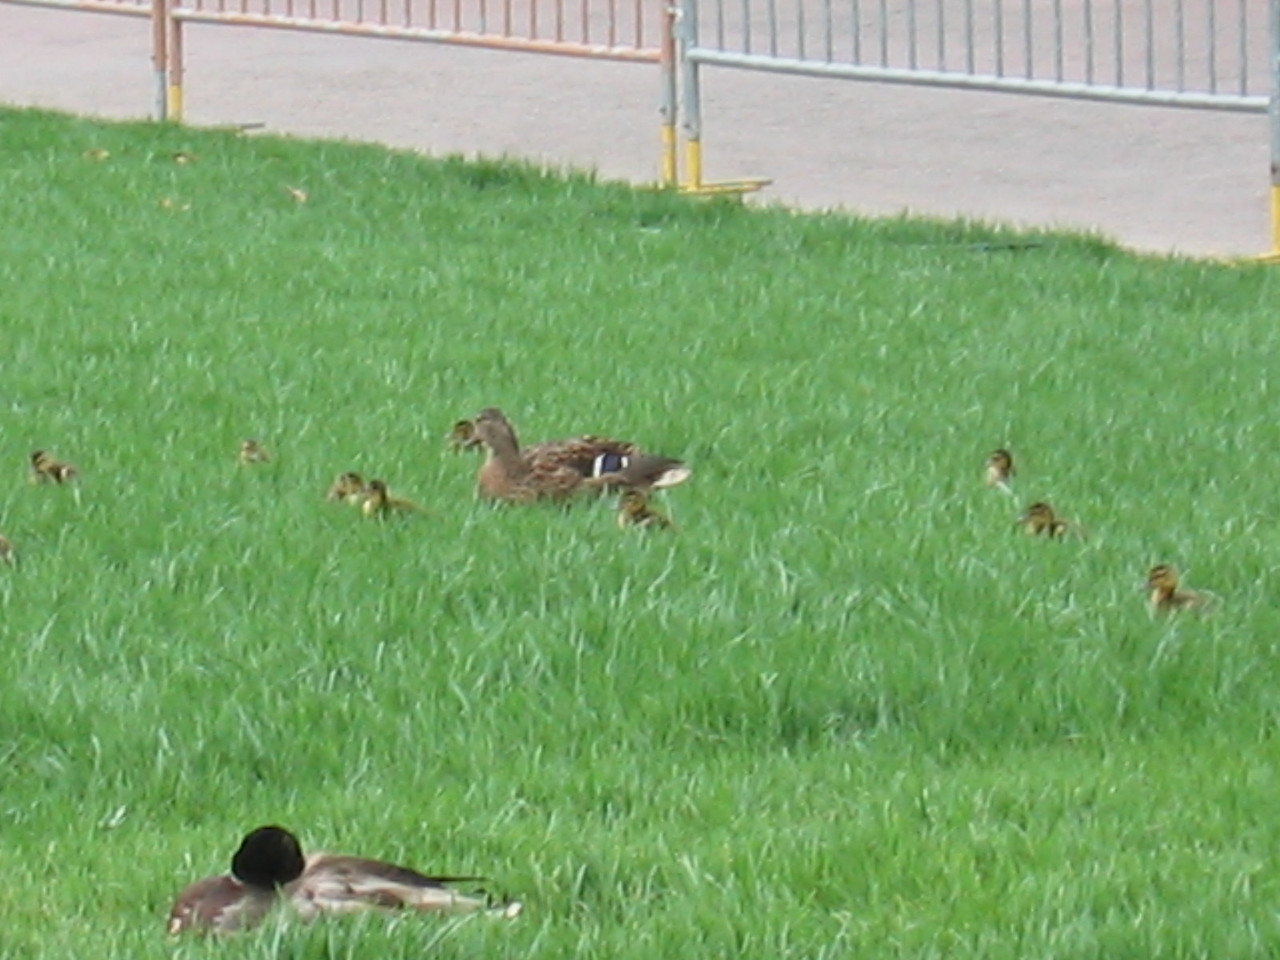 Deadbeat duck dad sleeps while mommy and kids wander